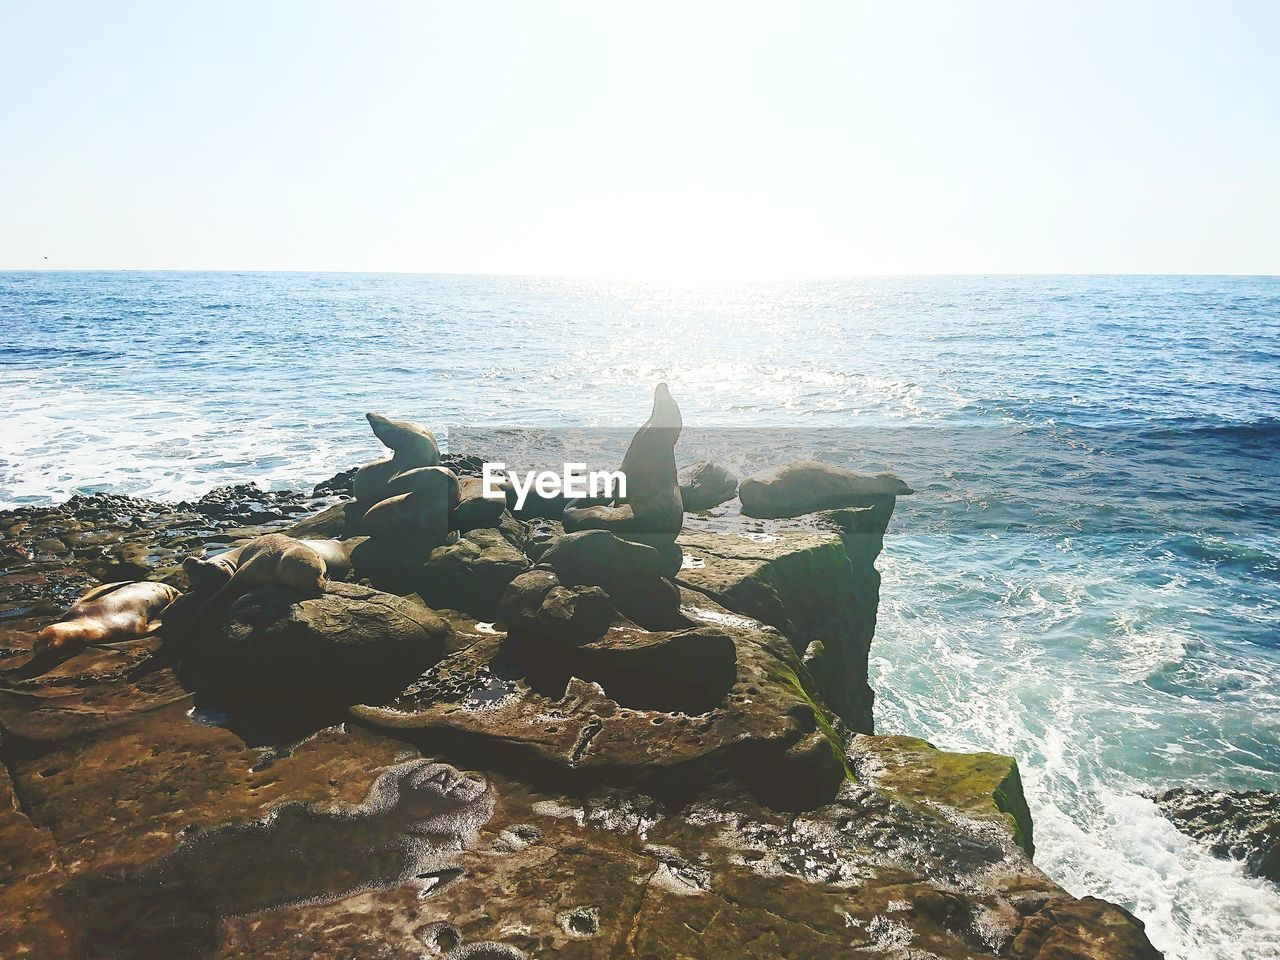 sea, water, horizon, horizon over water, rock, sky, rock - object, beauty in nature, scenics - nature, solid, beach, nature, tranquility, tranquil scene, day, no people, land, clear sky, motion, outdoors, marine